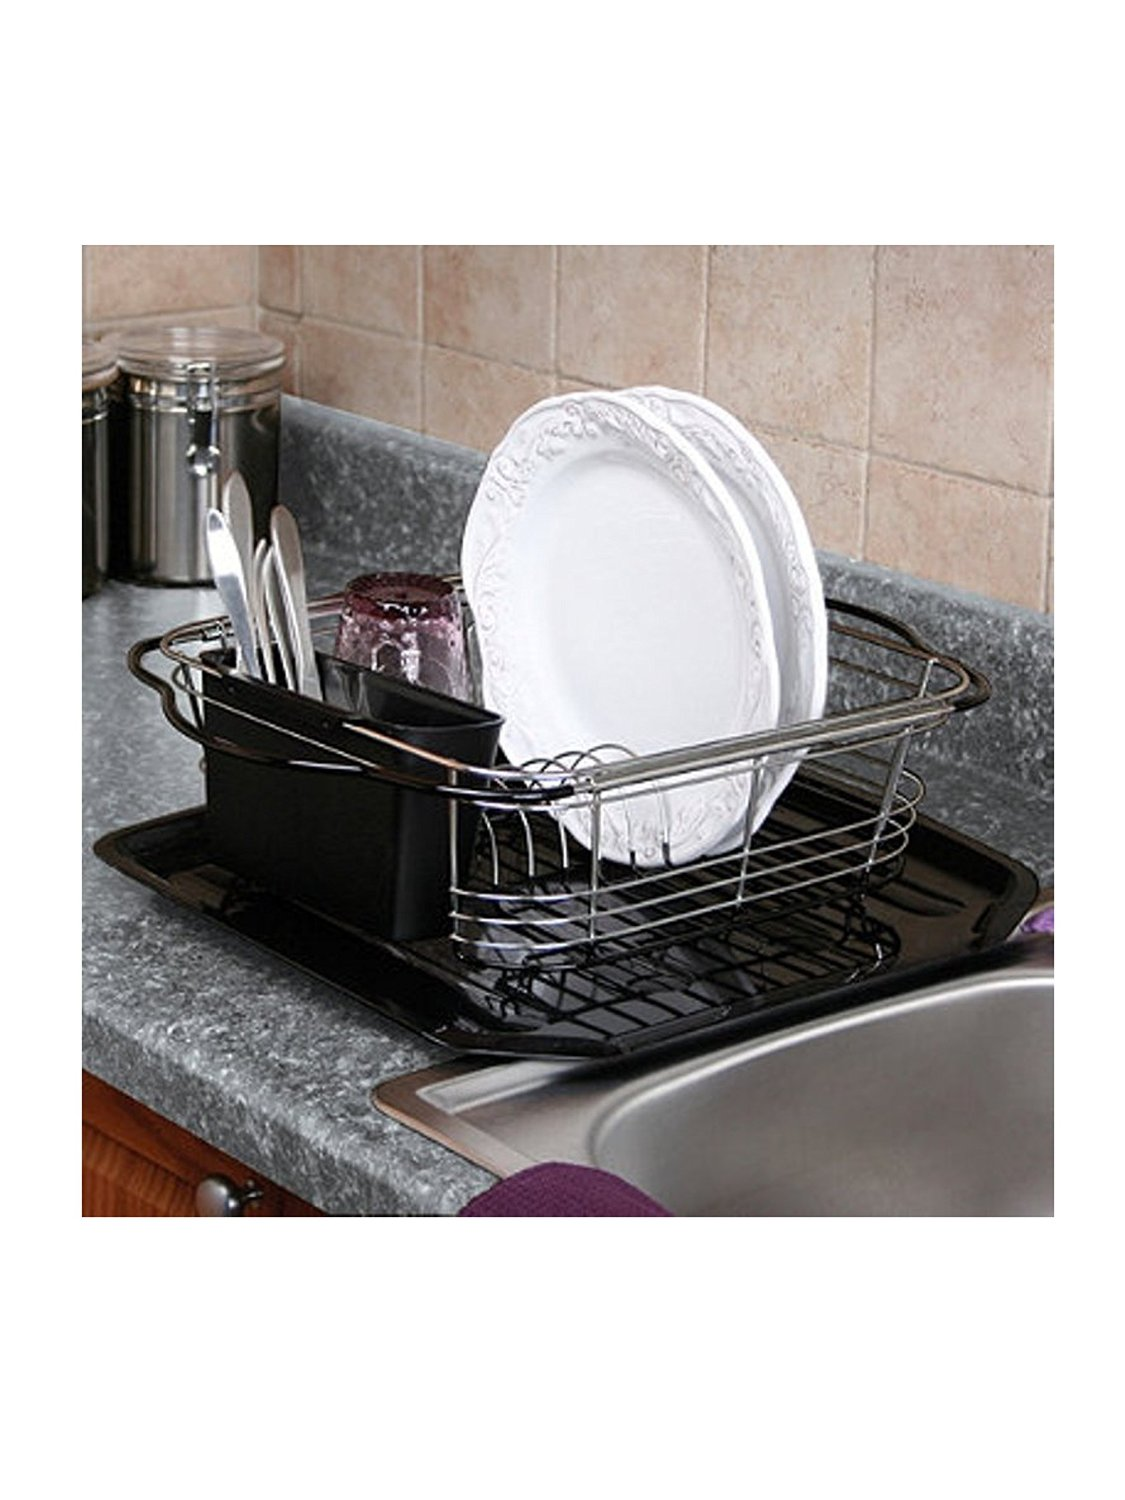 Dish Drying Rack In Sink On Counter Or Expandable Over